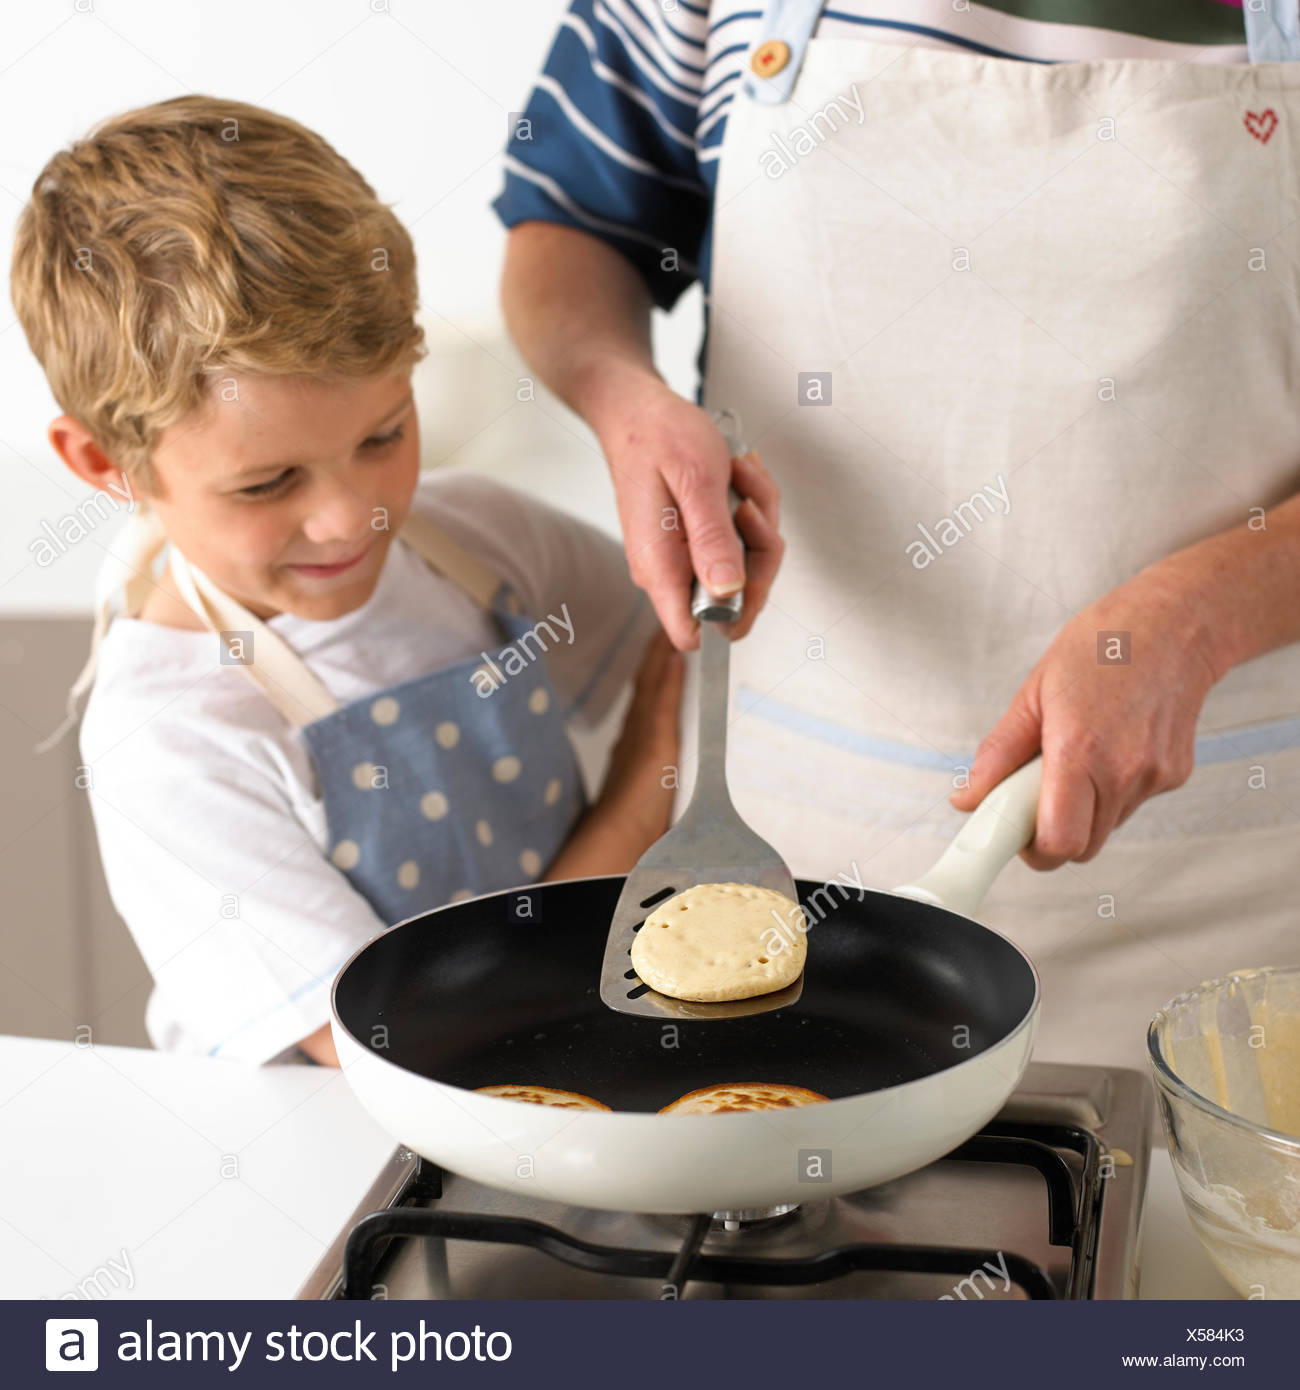 Flipping pancakes in a frying pan - Stock Image